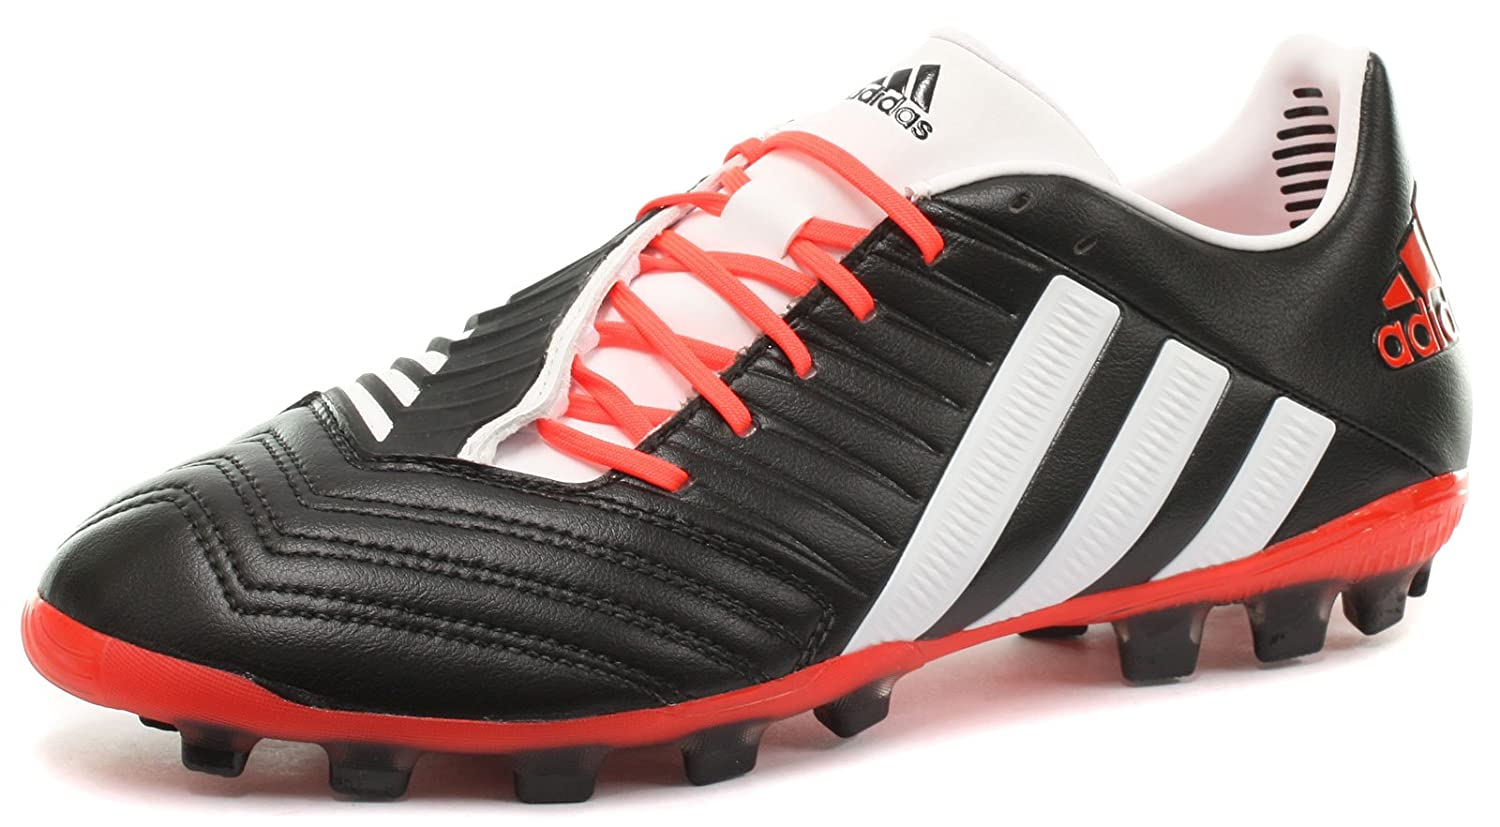 adidas Predator Incurza TRX AG Artificial Ground Mens Rugby Boots Size 6.5